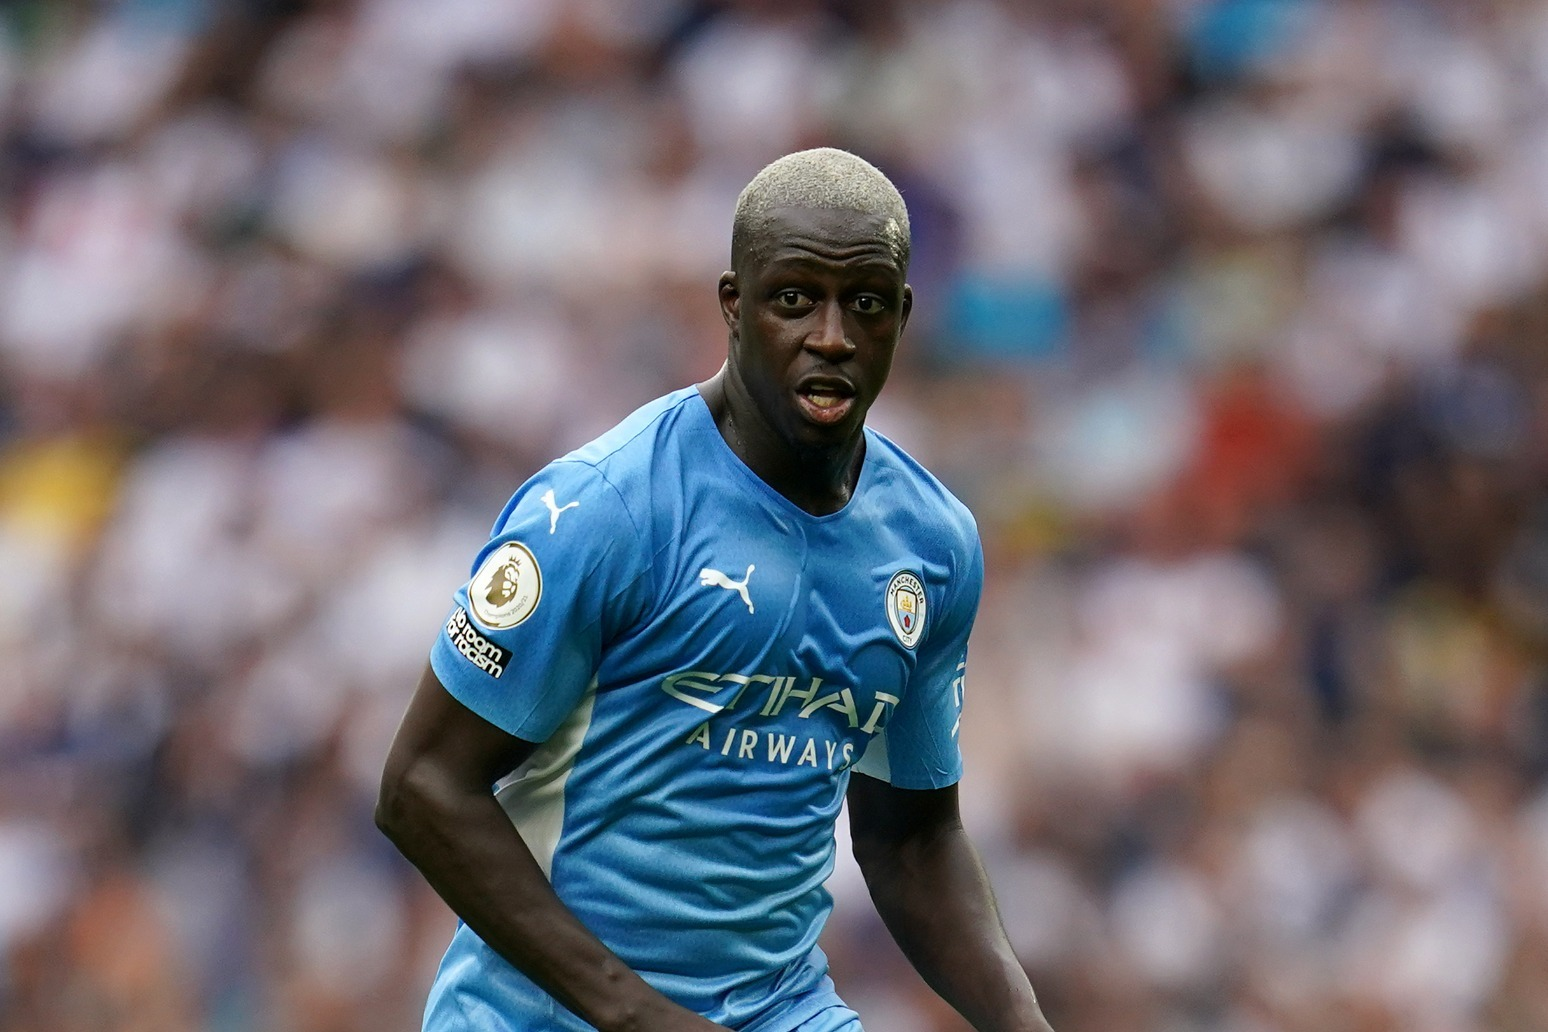 Benjamin Mendy to go on trial early next year accused of rape